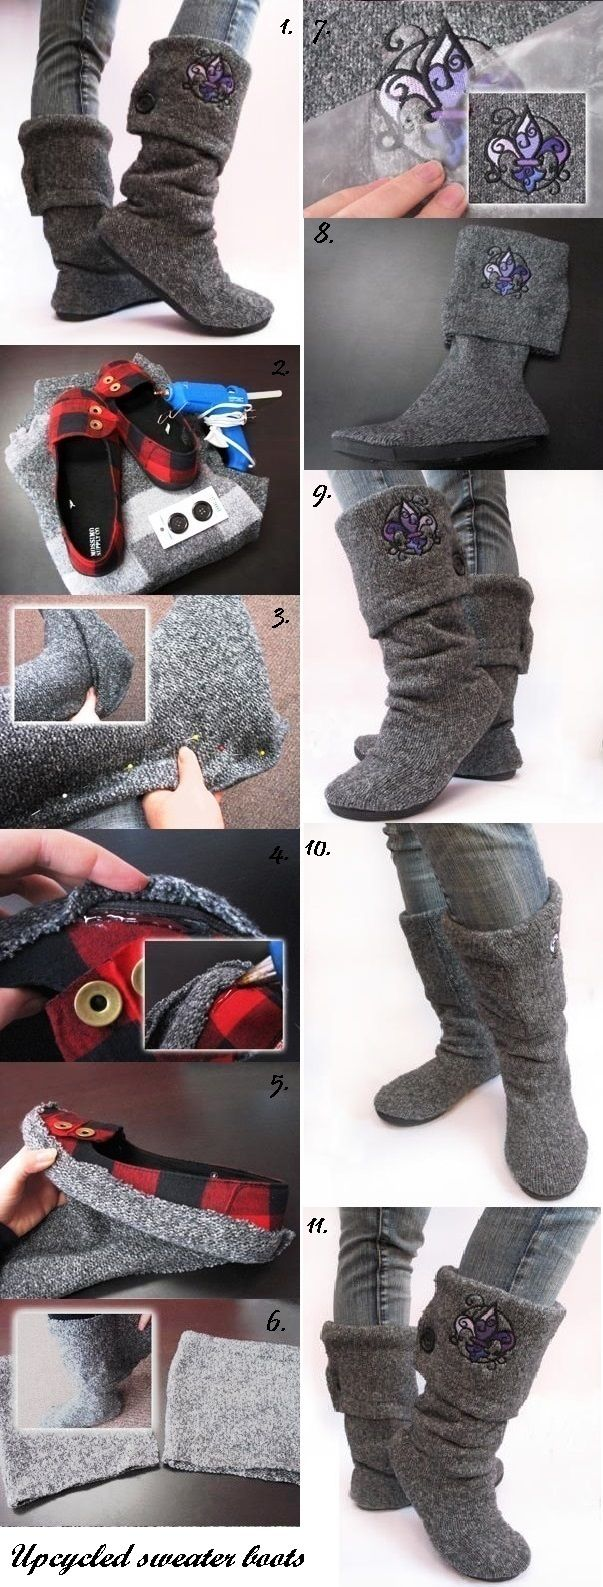 Up-cycled sweater boots. Could be fun! So much to do with sweaters...leg warmers, hats, mitts etc. ~Sophie